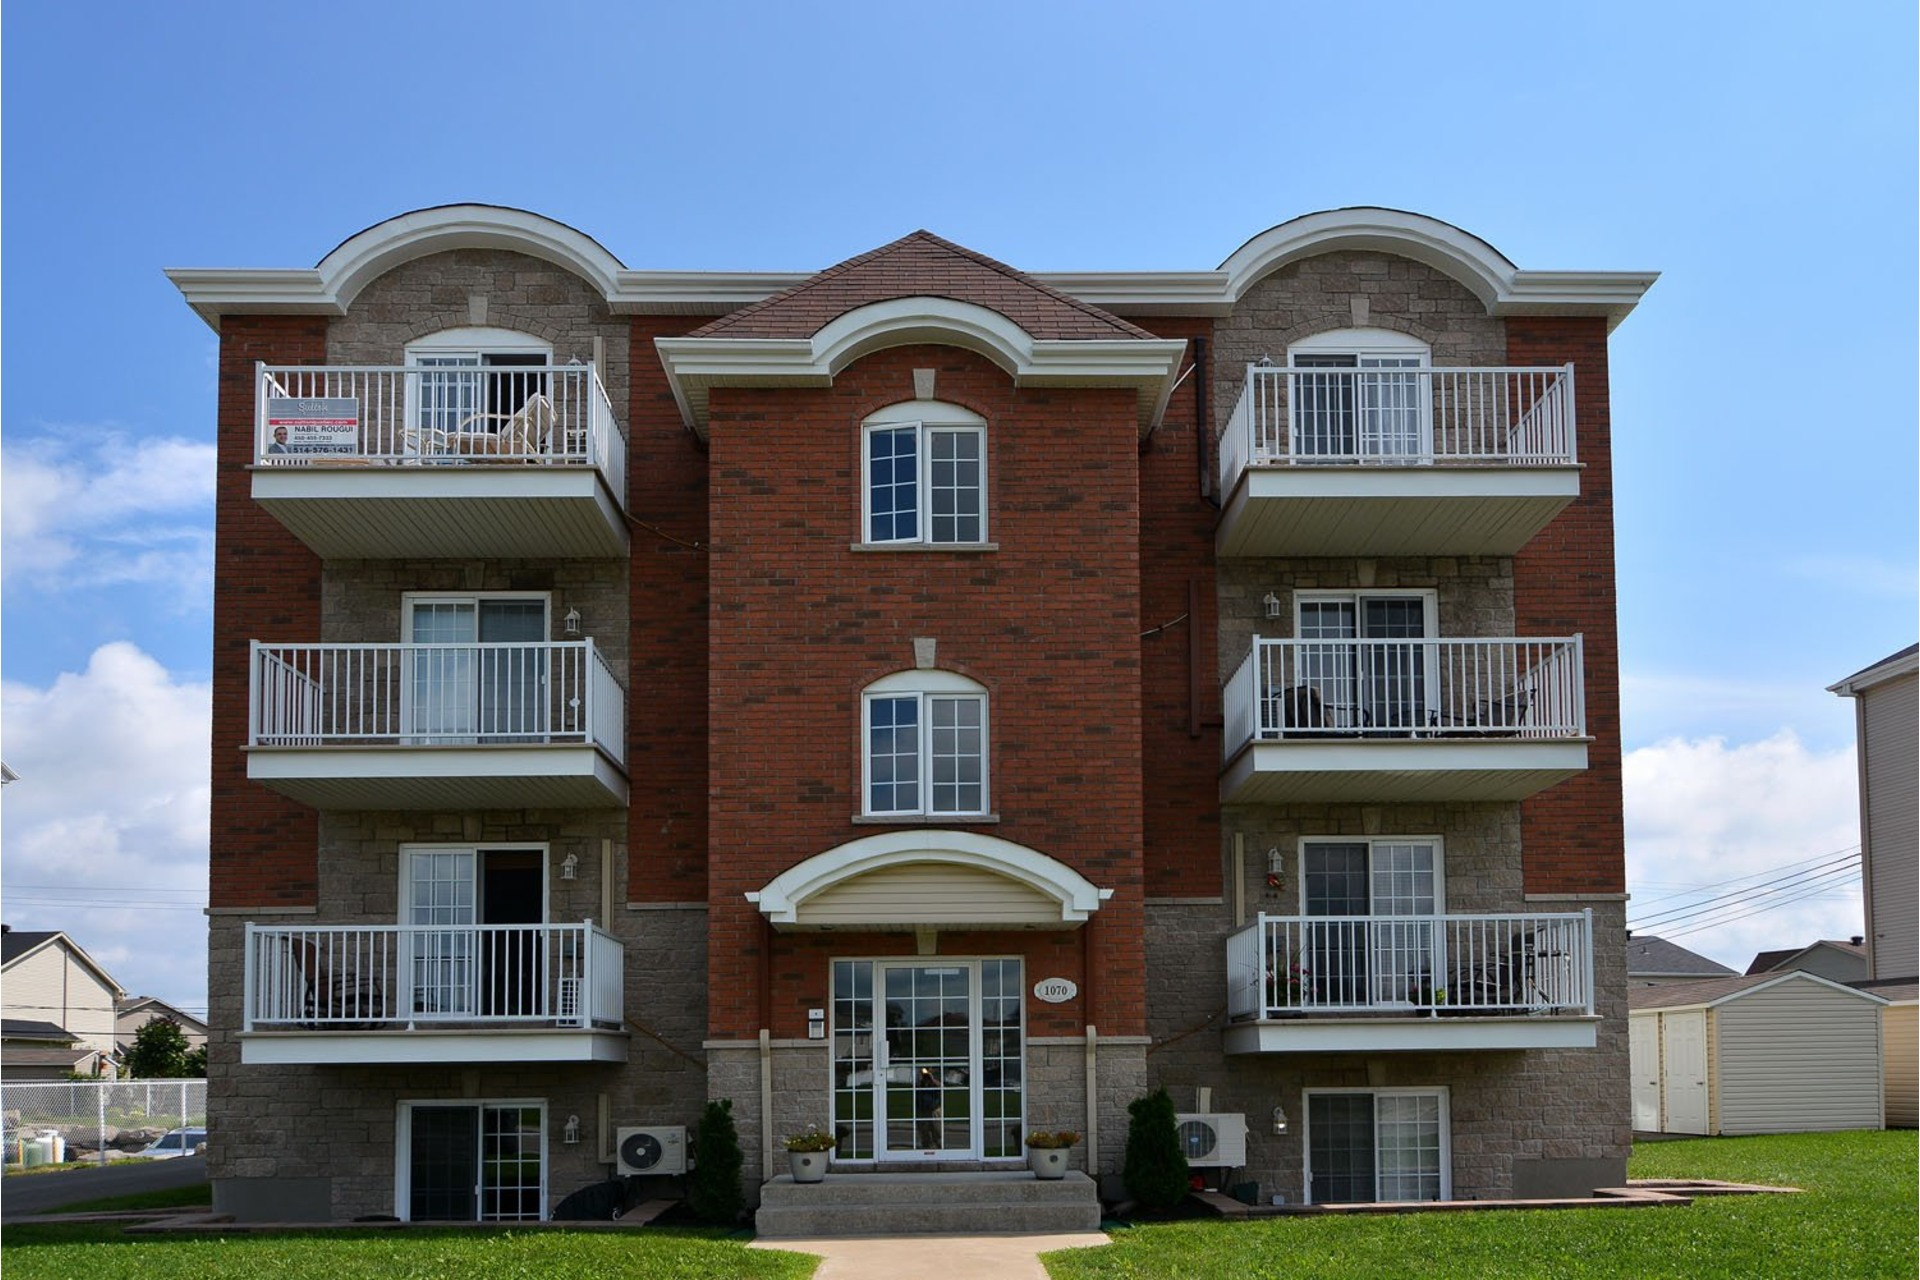 Apartment For sale Vaudreuil-Dorion - 7 rooms